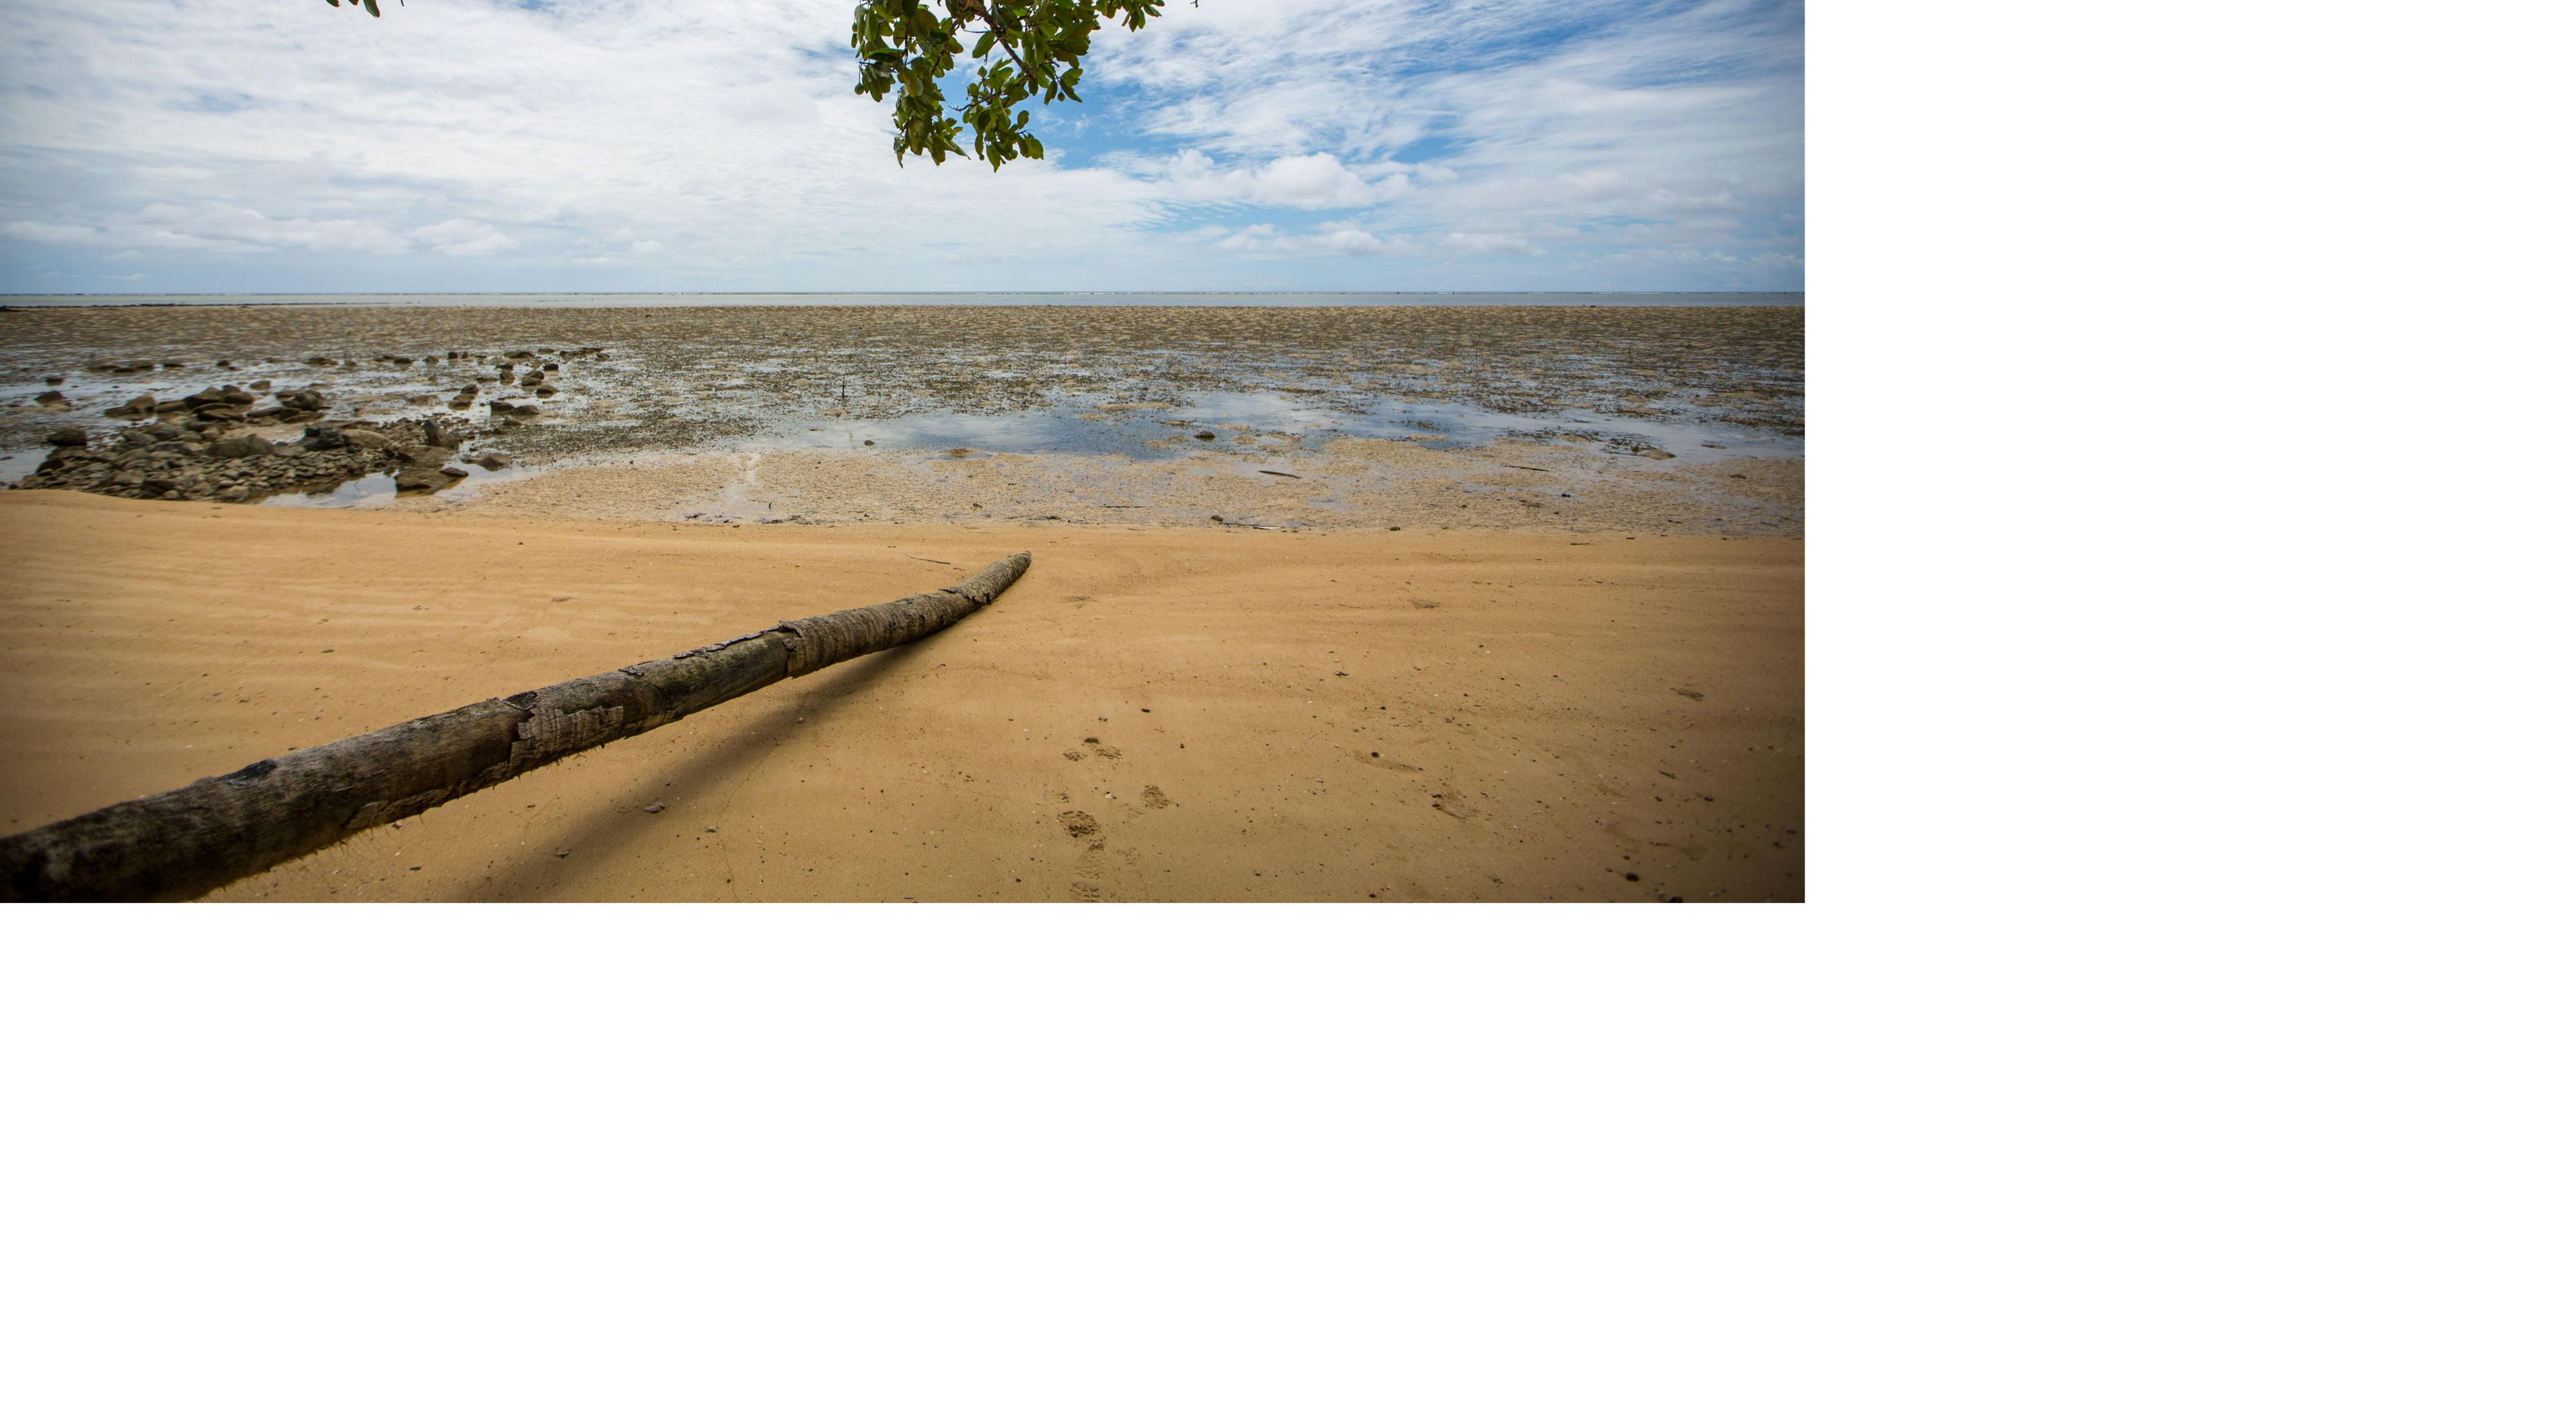 A downed palm tree lays across a beach.